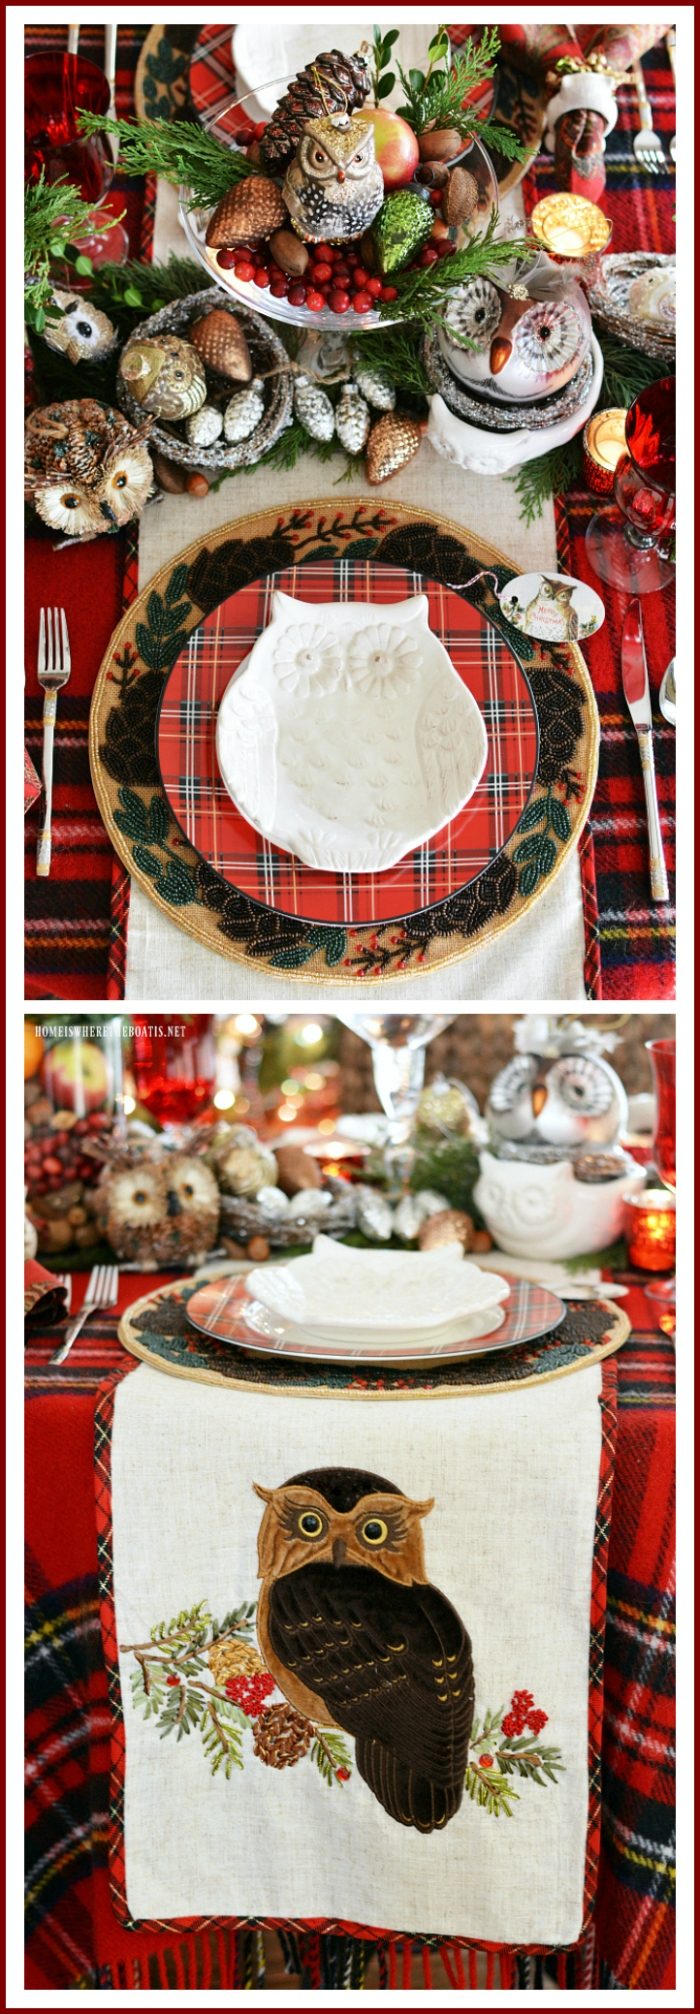 Tis The Season Christmas Tablescapes And Centerpieces Home Is